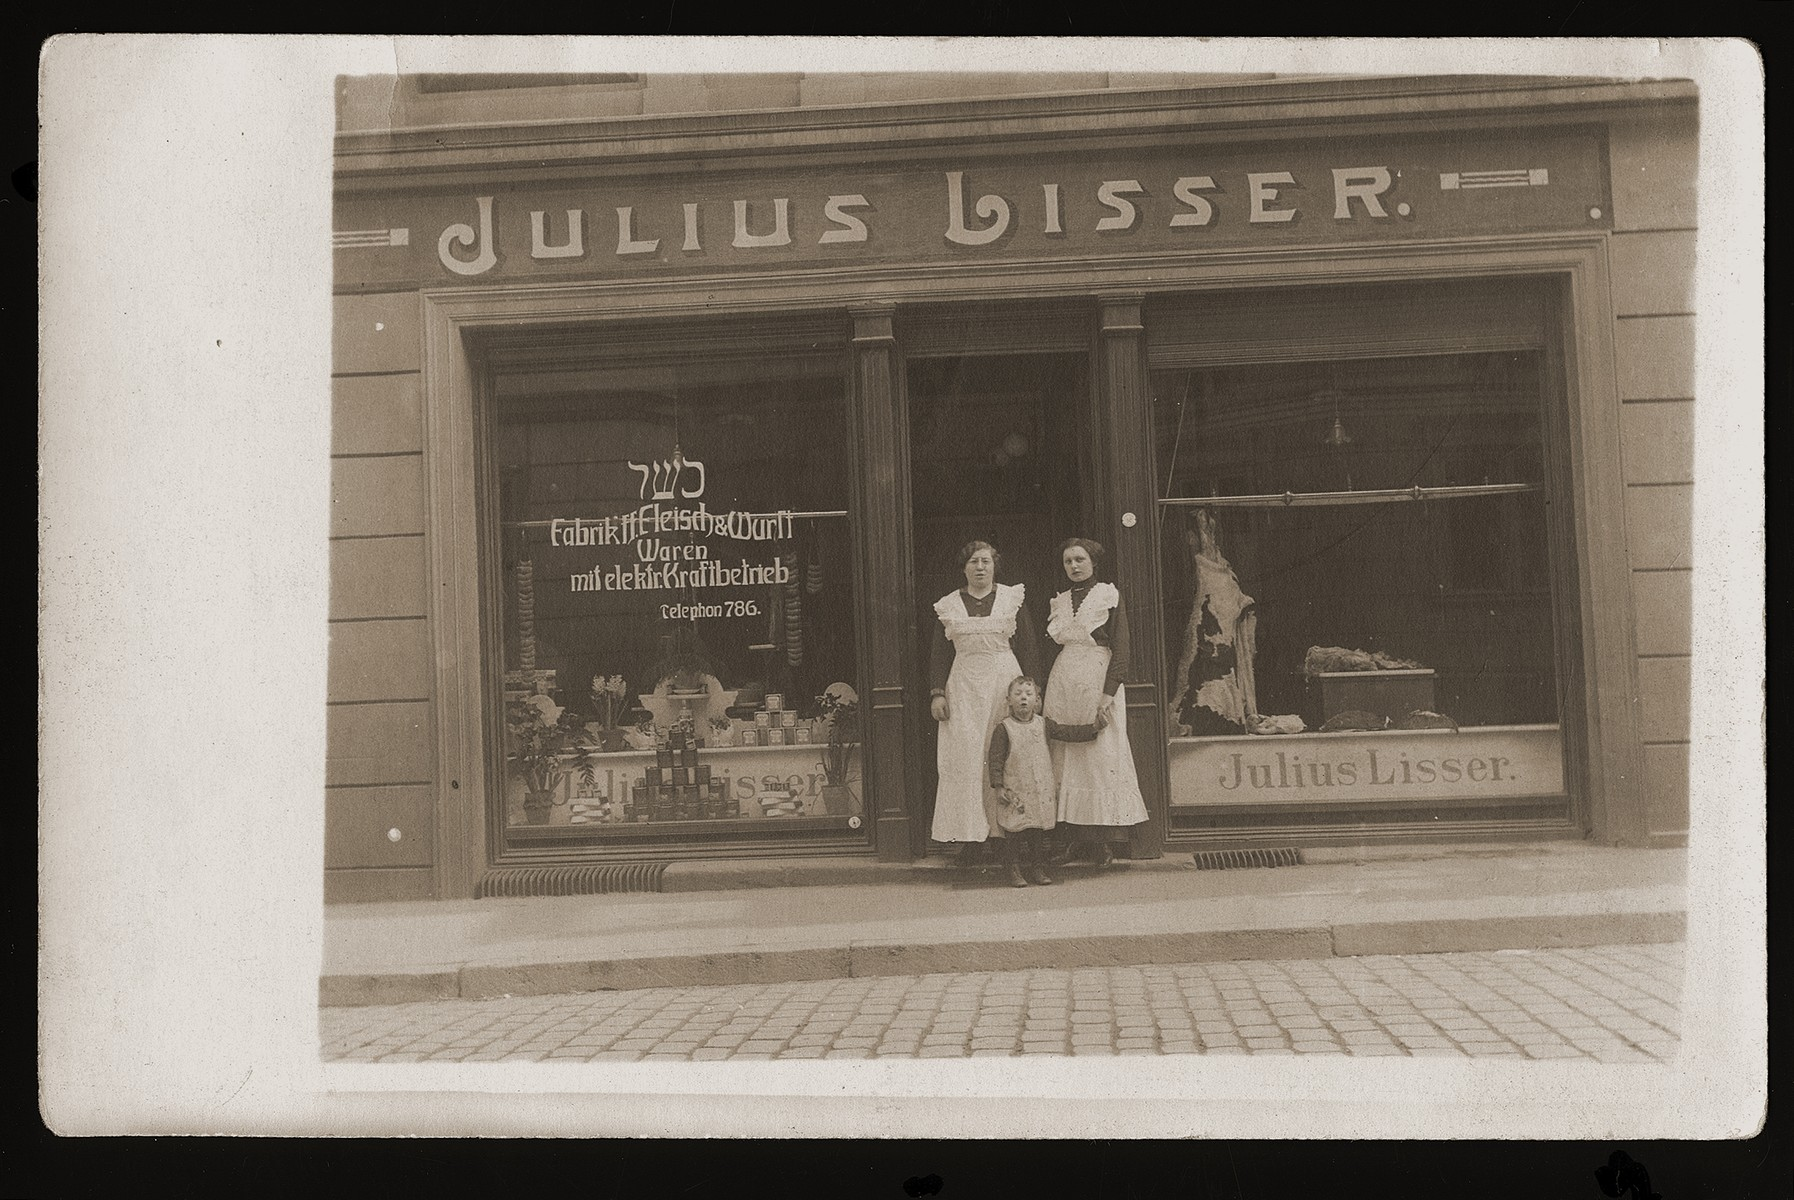 Members of the Lisser family pose in front of the Julius Lisser kosher butcher shop in Danzig.